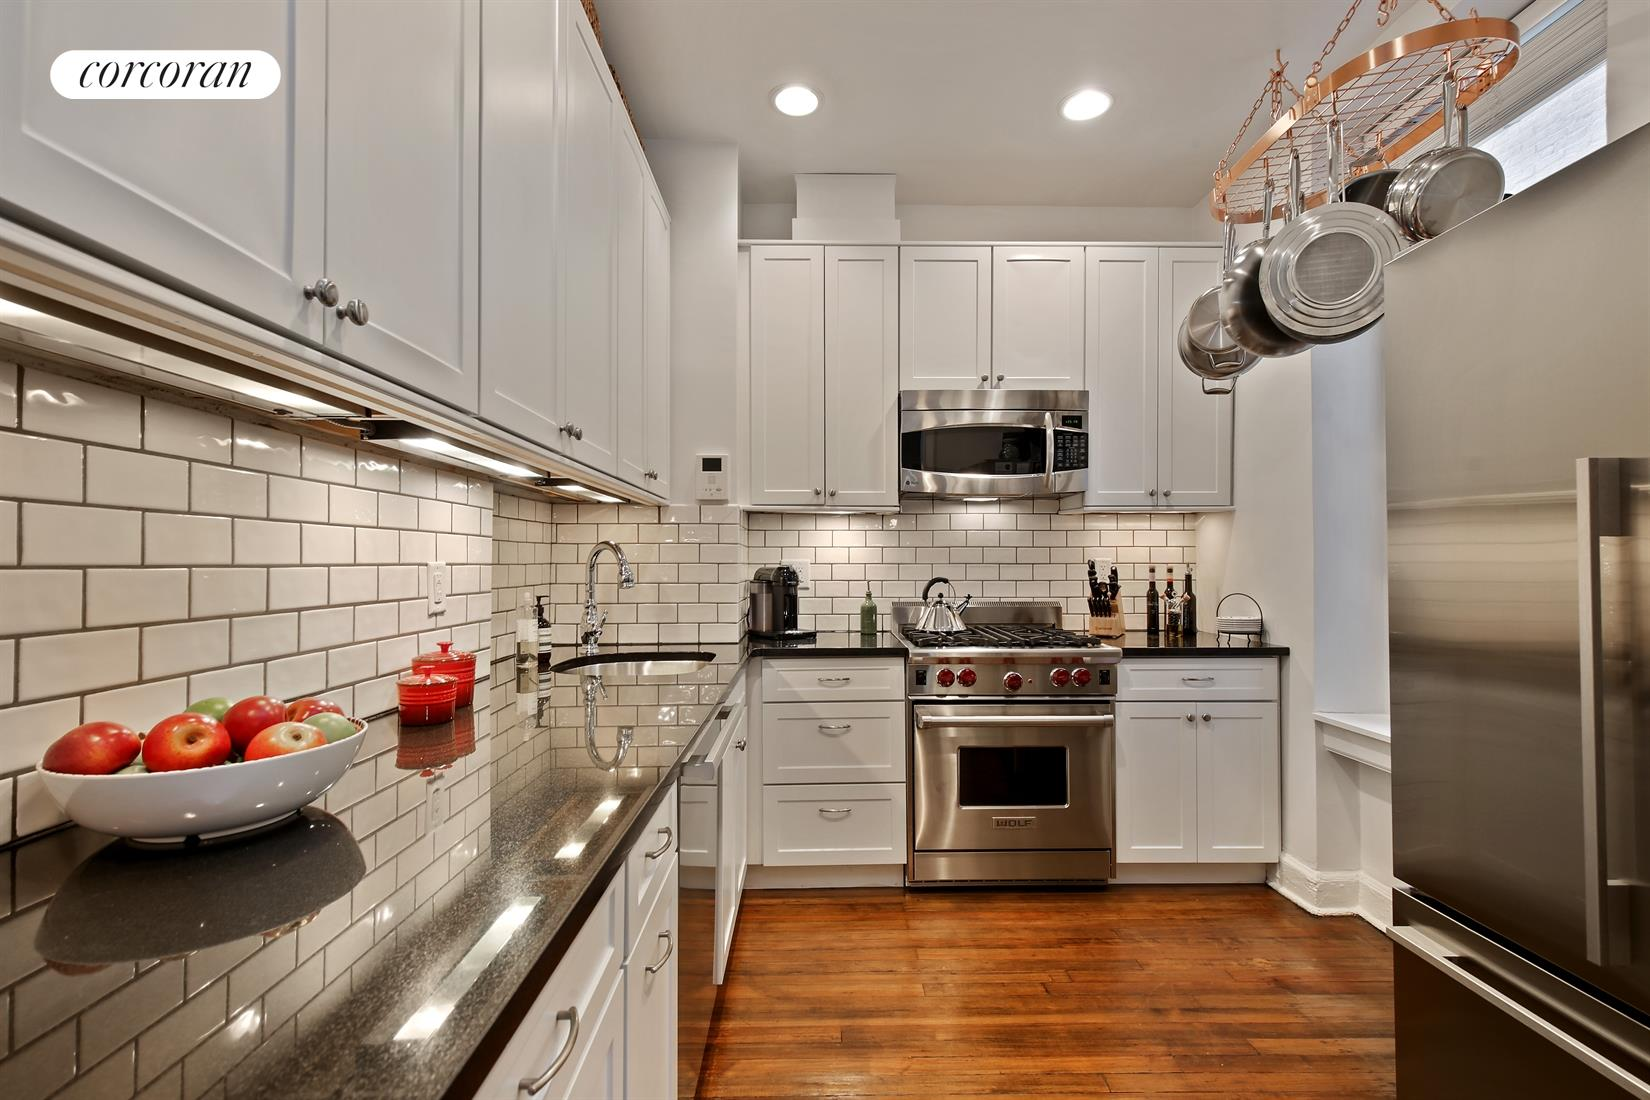 corcoran 124 state street apt 3 brooklyn heights real estate